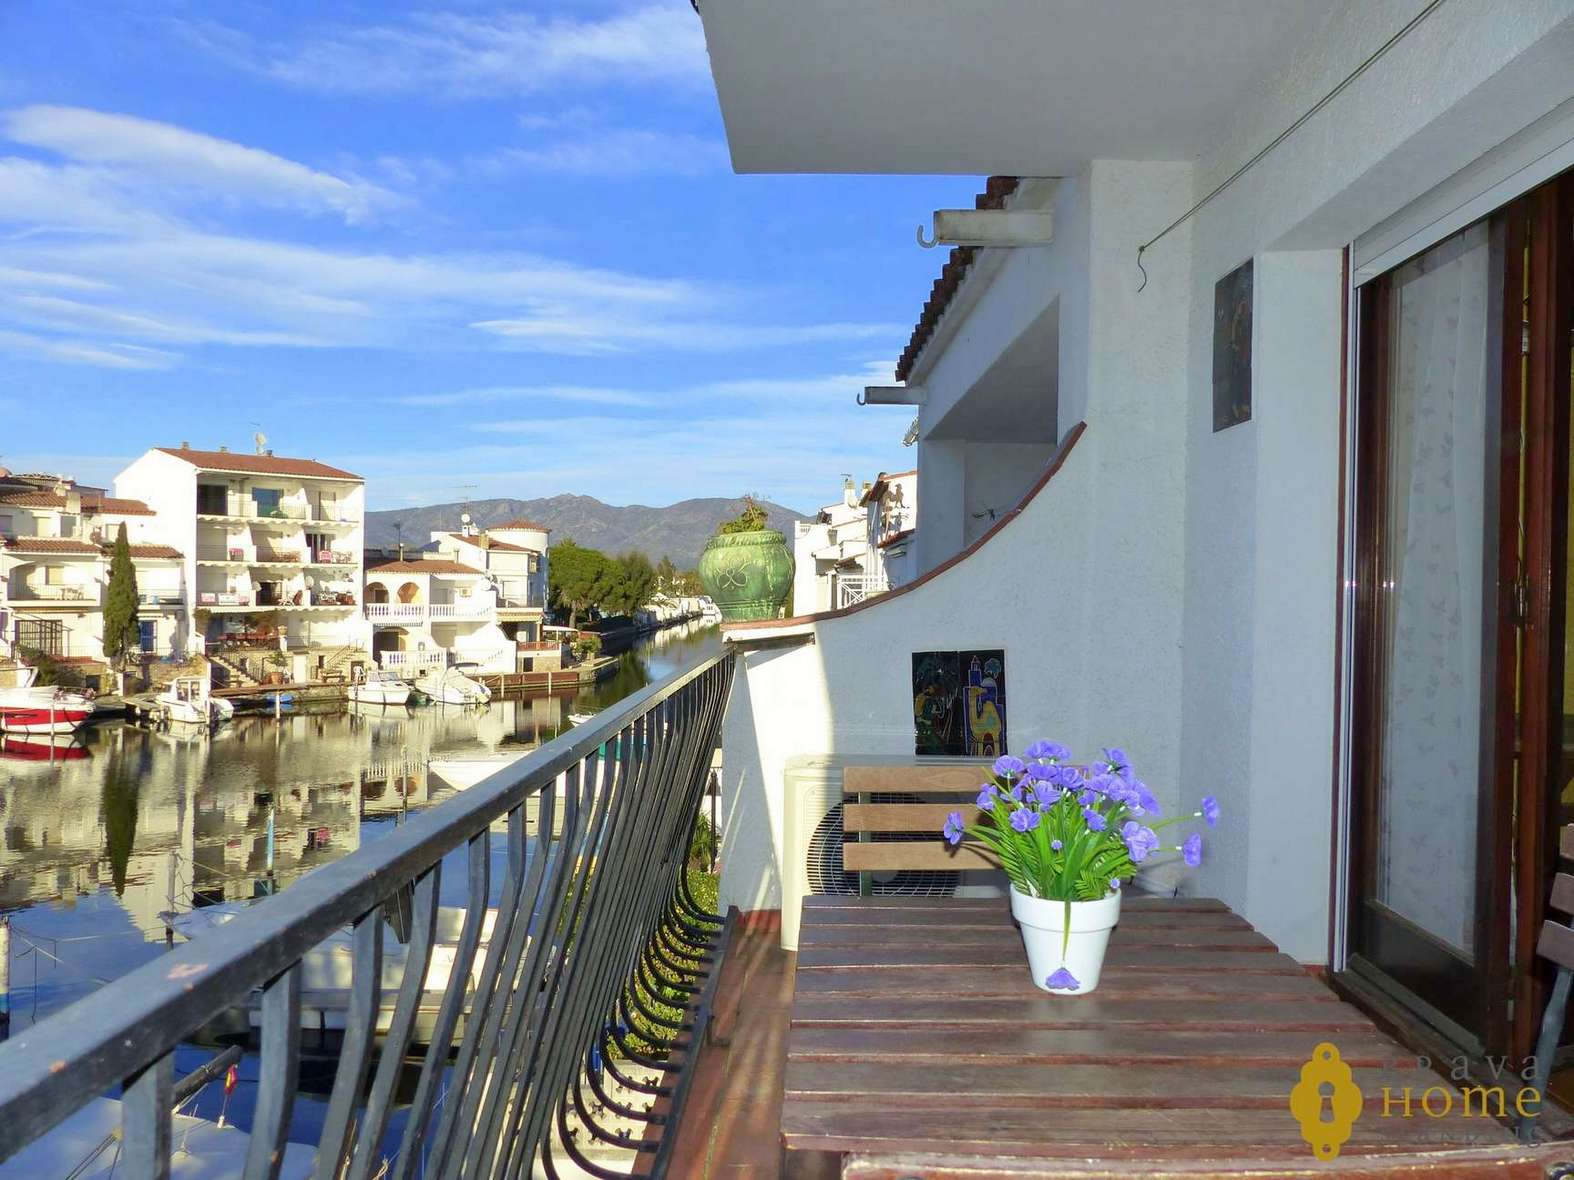 Beautiful apartment overlooking the canal, for sale in Empuriabrava.